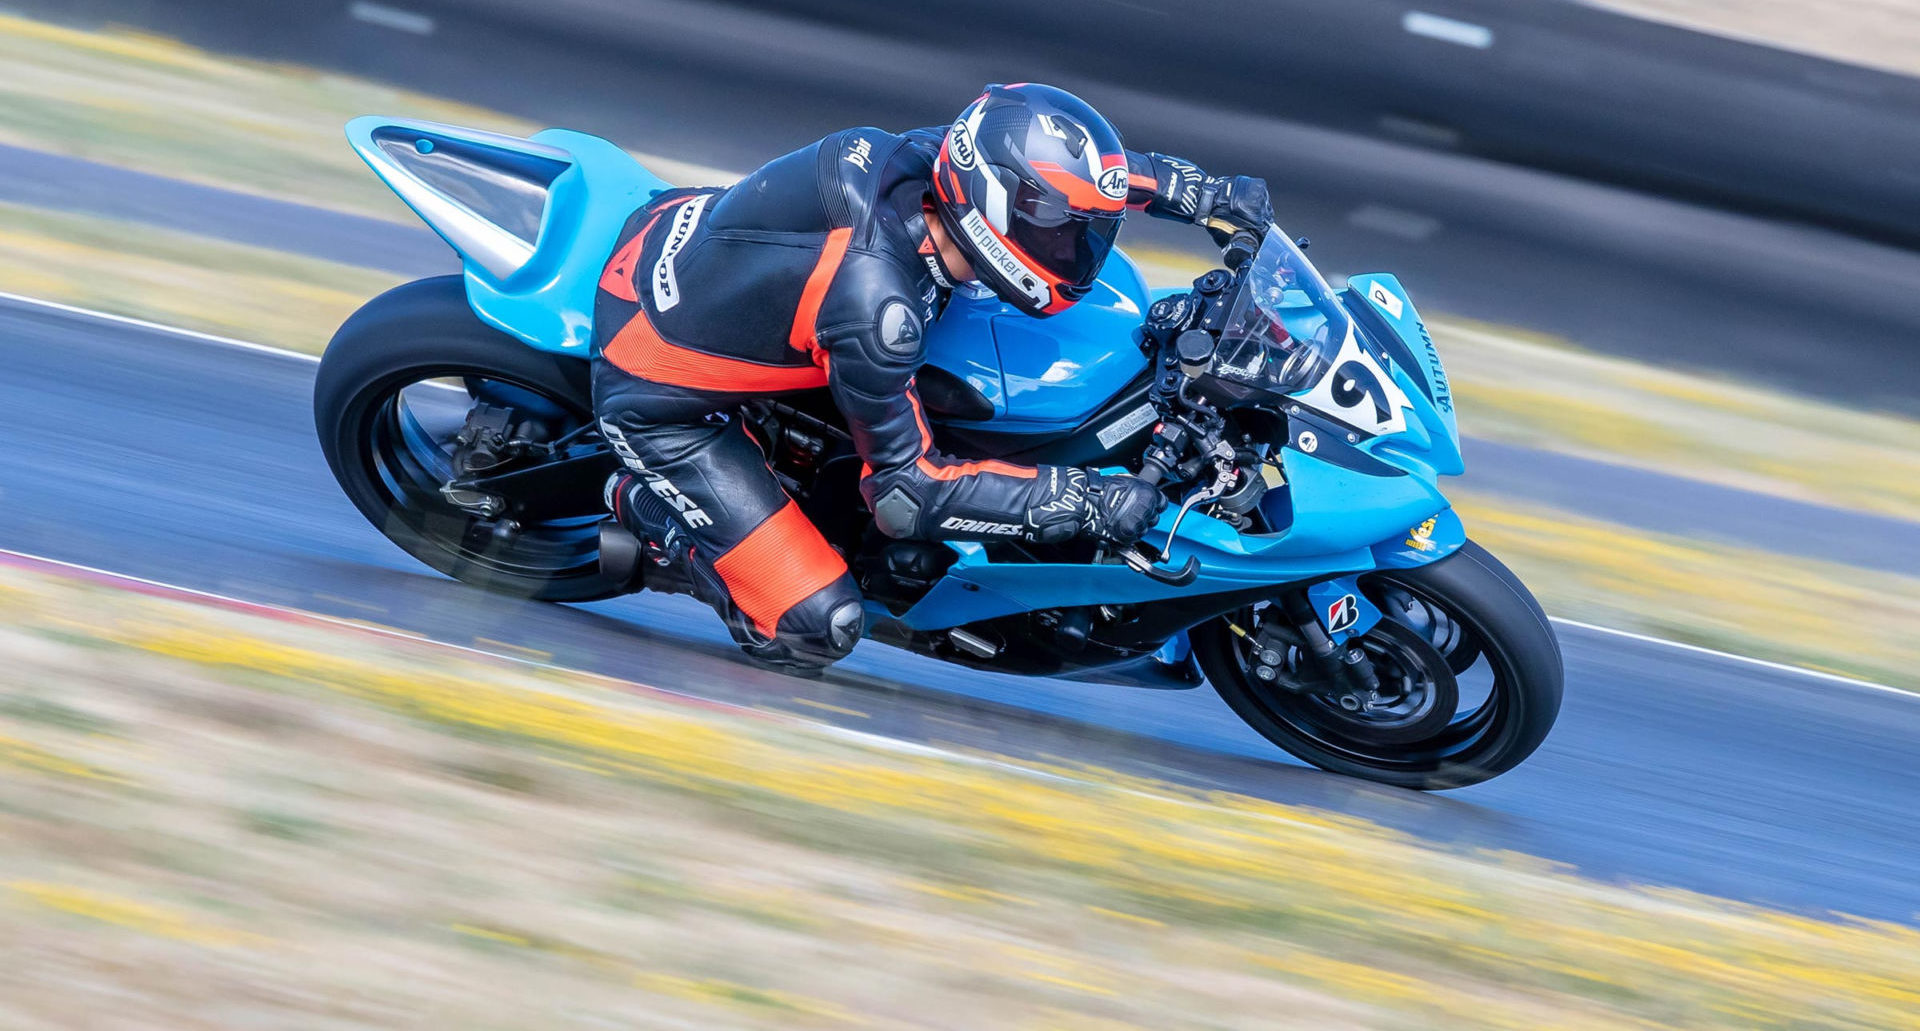 Alex Taylor (91) at speed at Portland International Raceway. Photo by Minh-Tri Le/NW Focal Point Photography, courtesy OMRRA.